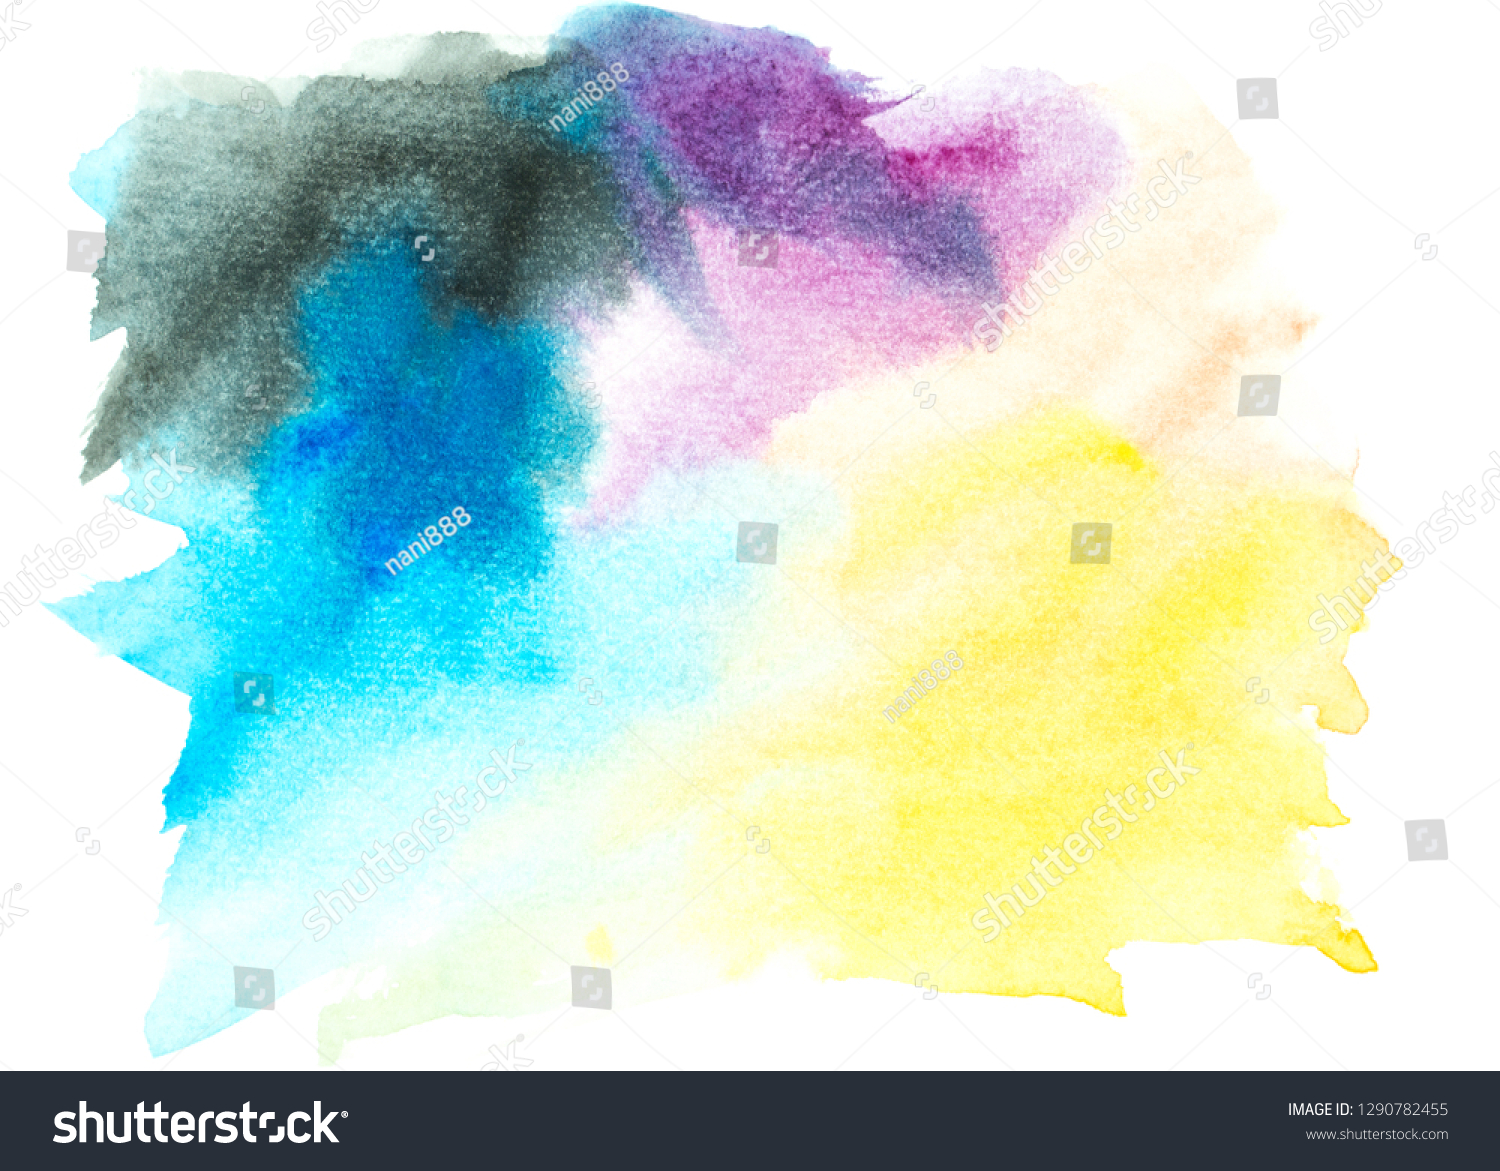 Watercolor Painting Ideas Colorful Shades Background Stock Illustration 1290782455